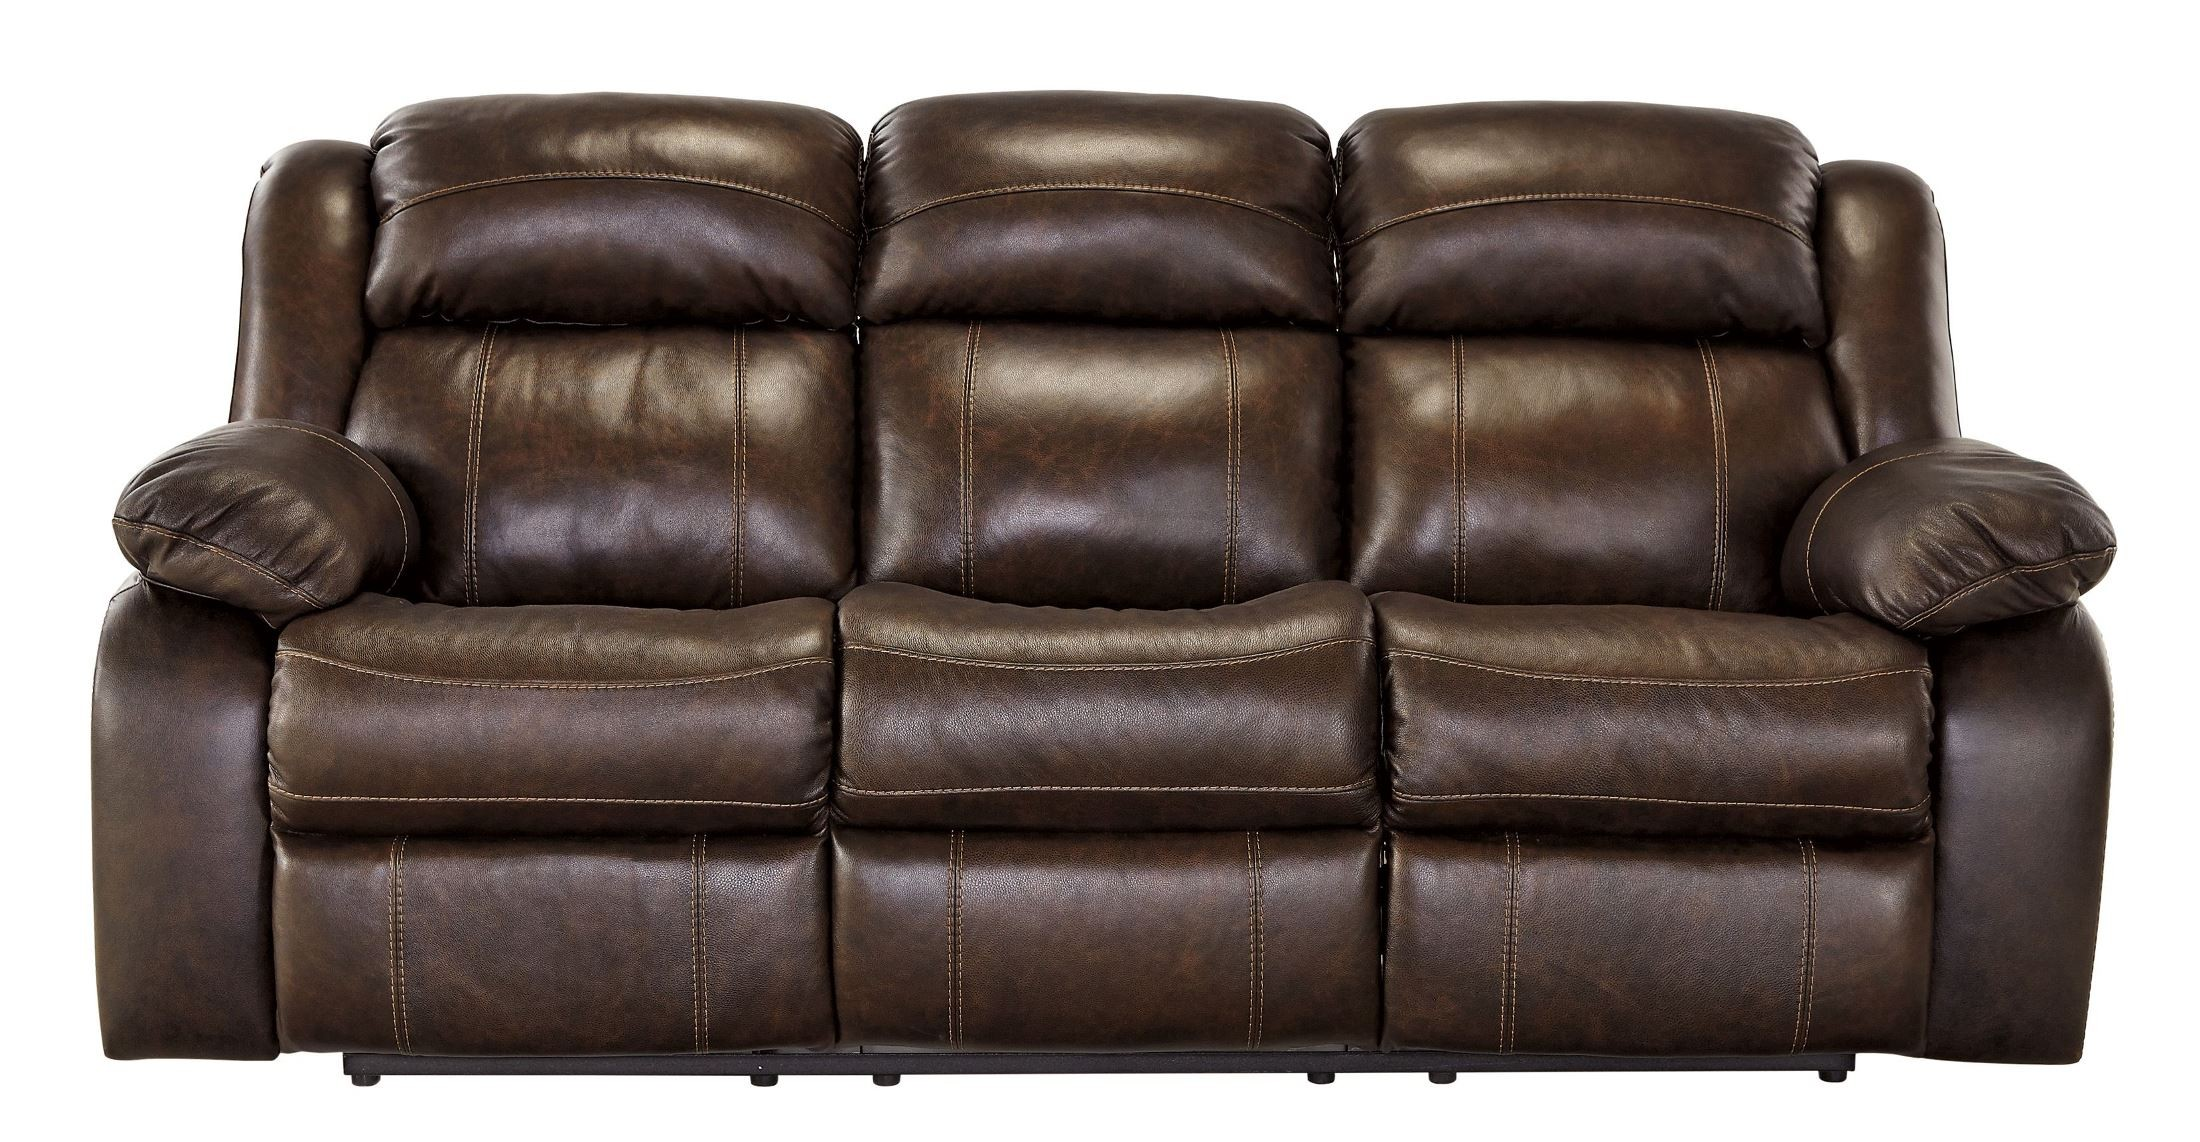 Branton Antique Power Reclining Sofa from Ashley U